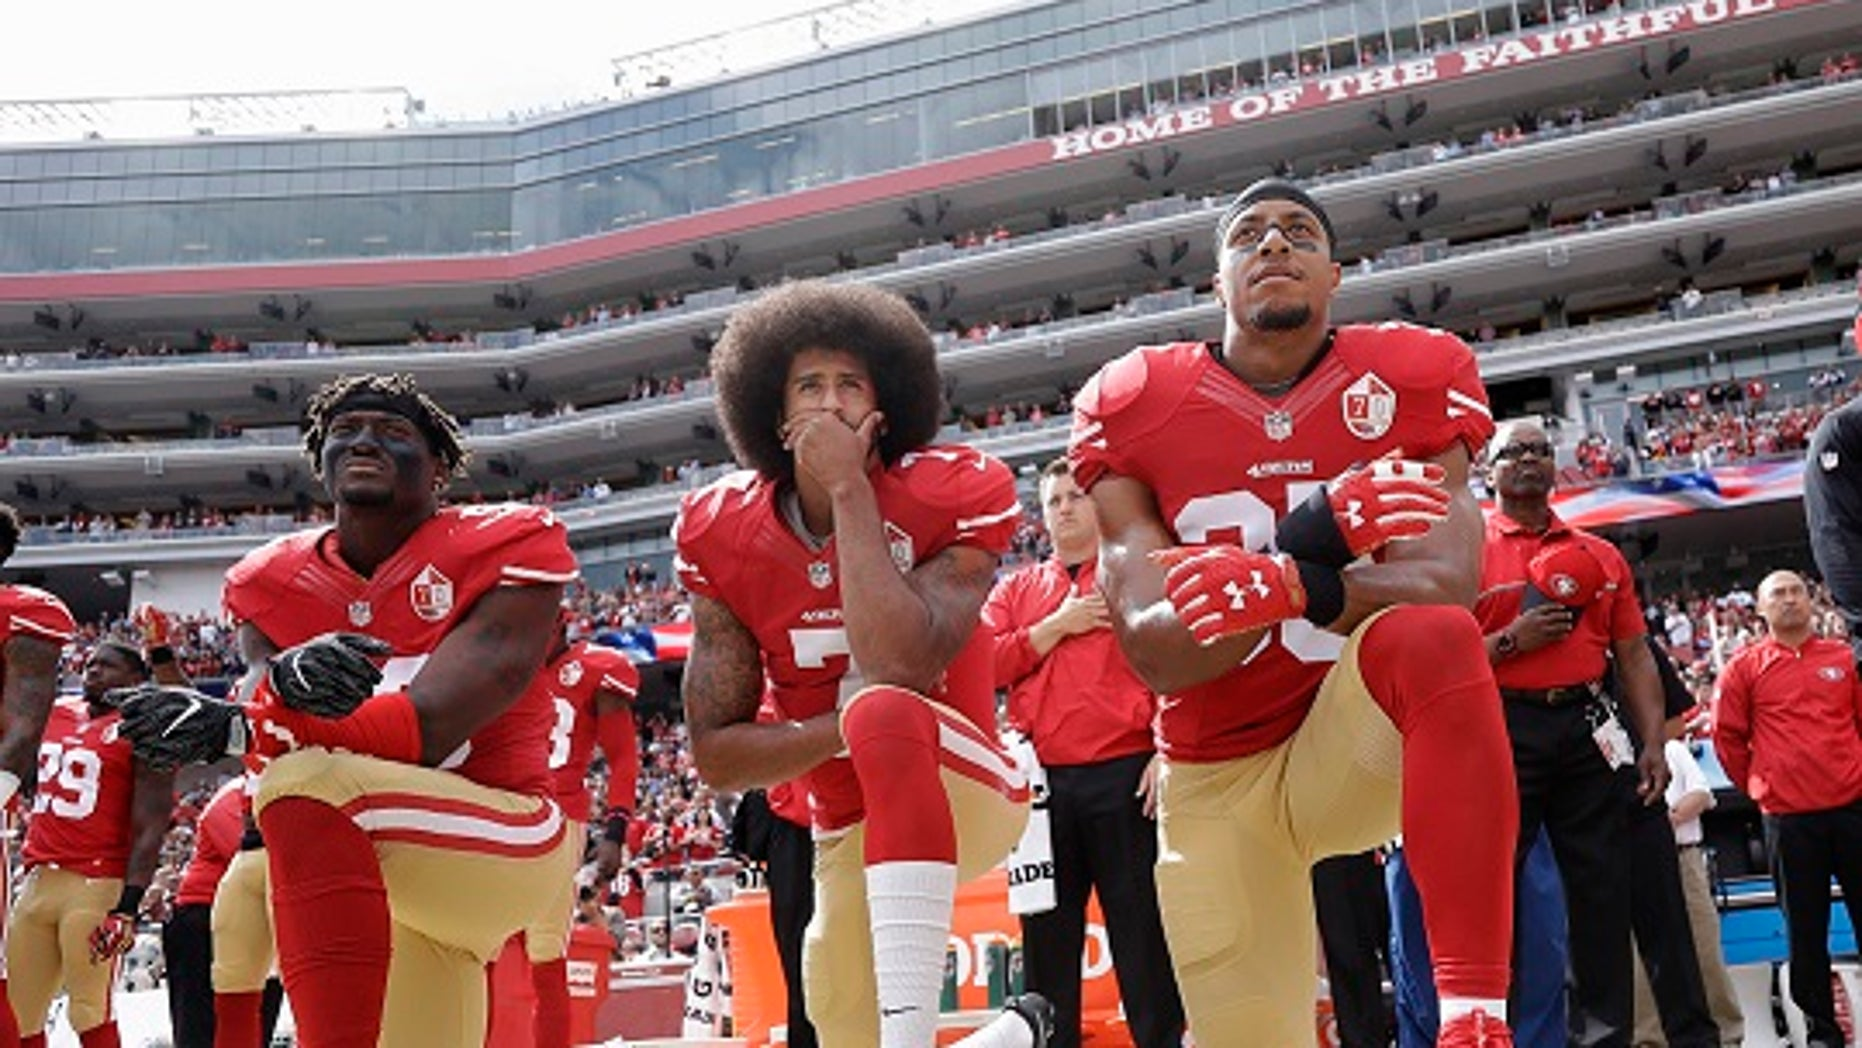 Colin Kaepernick, former quarterback for the San Francisco 49ers (center), began to kneel during the national anthem at preseason games in August 2016. He was protesting police brutality.